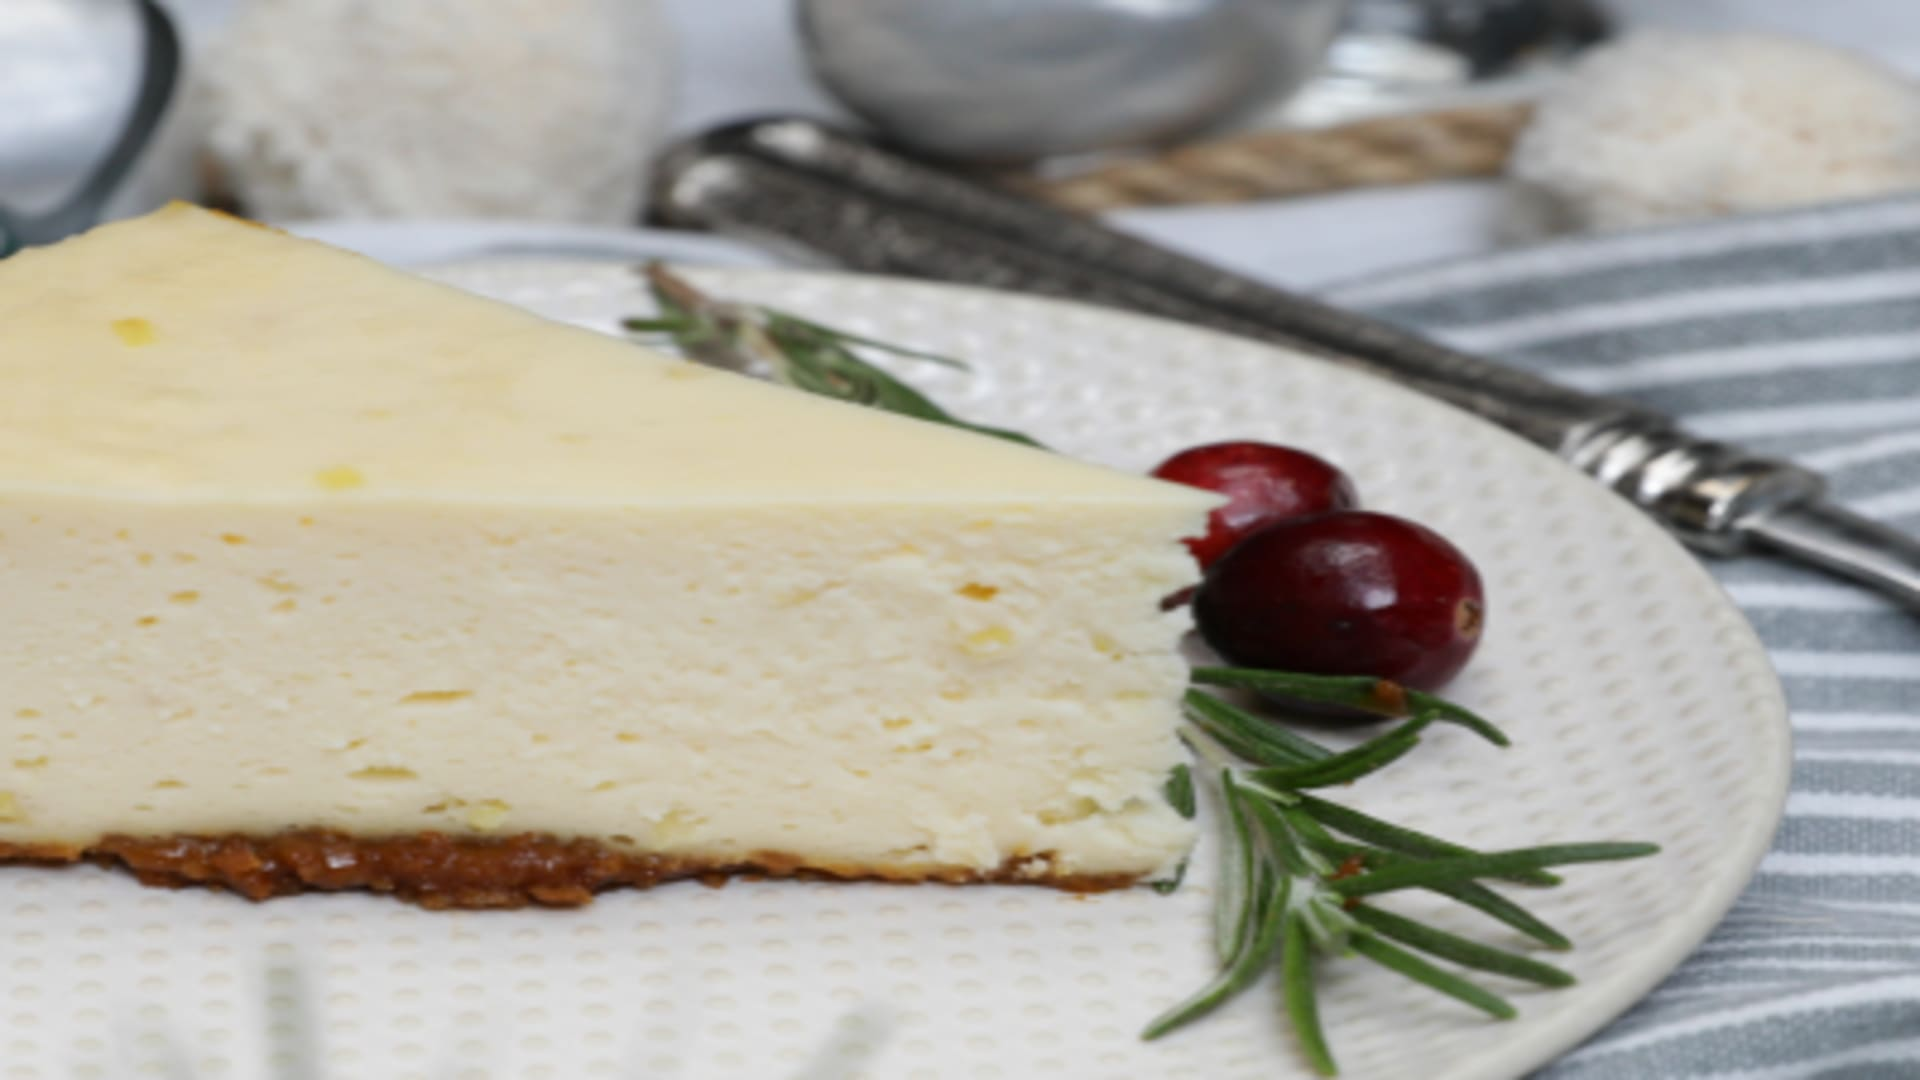 Image forPressure Cooker Holiday Gingersnap Cheesecake